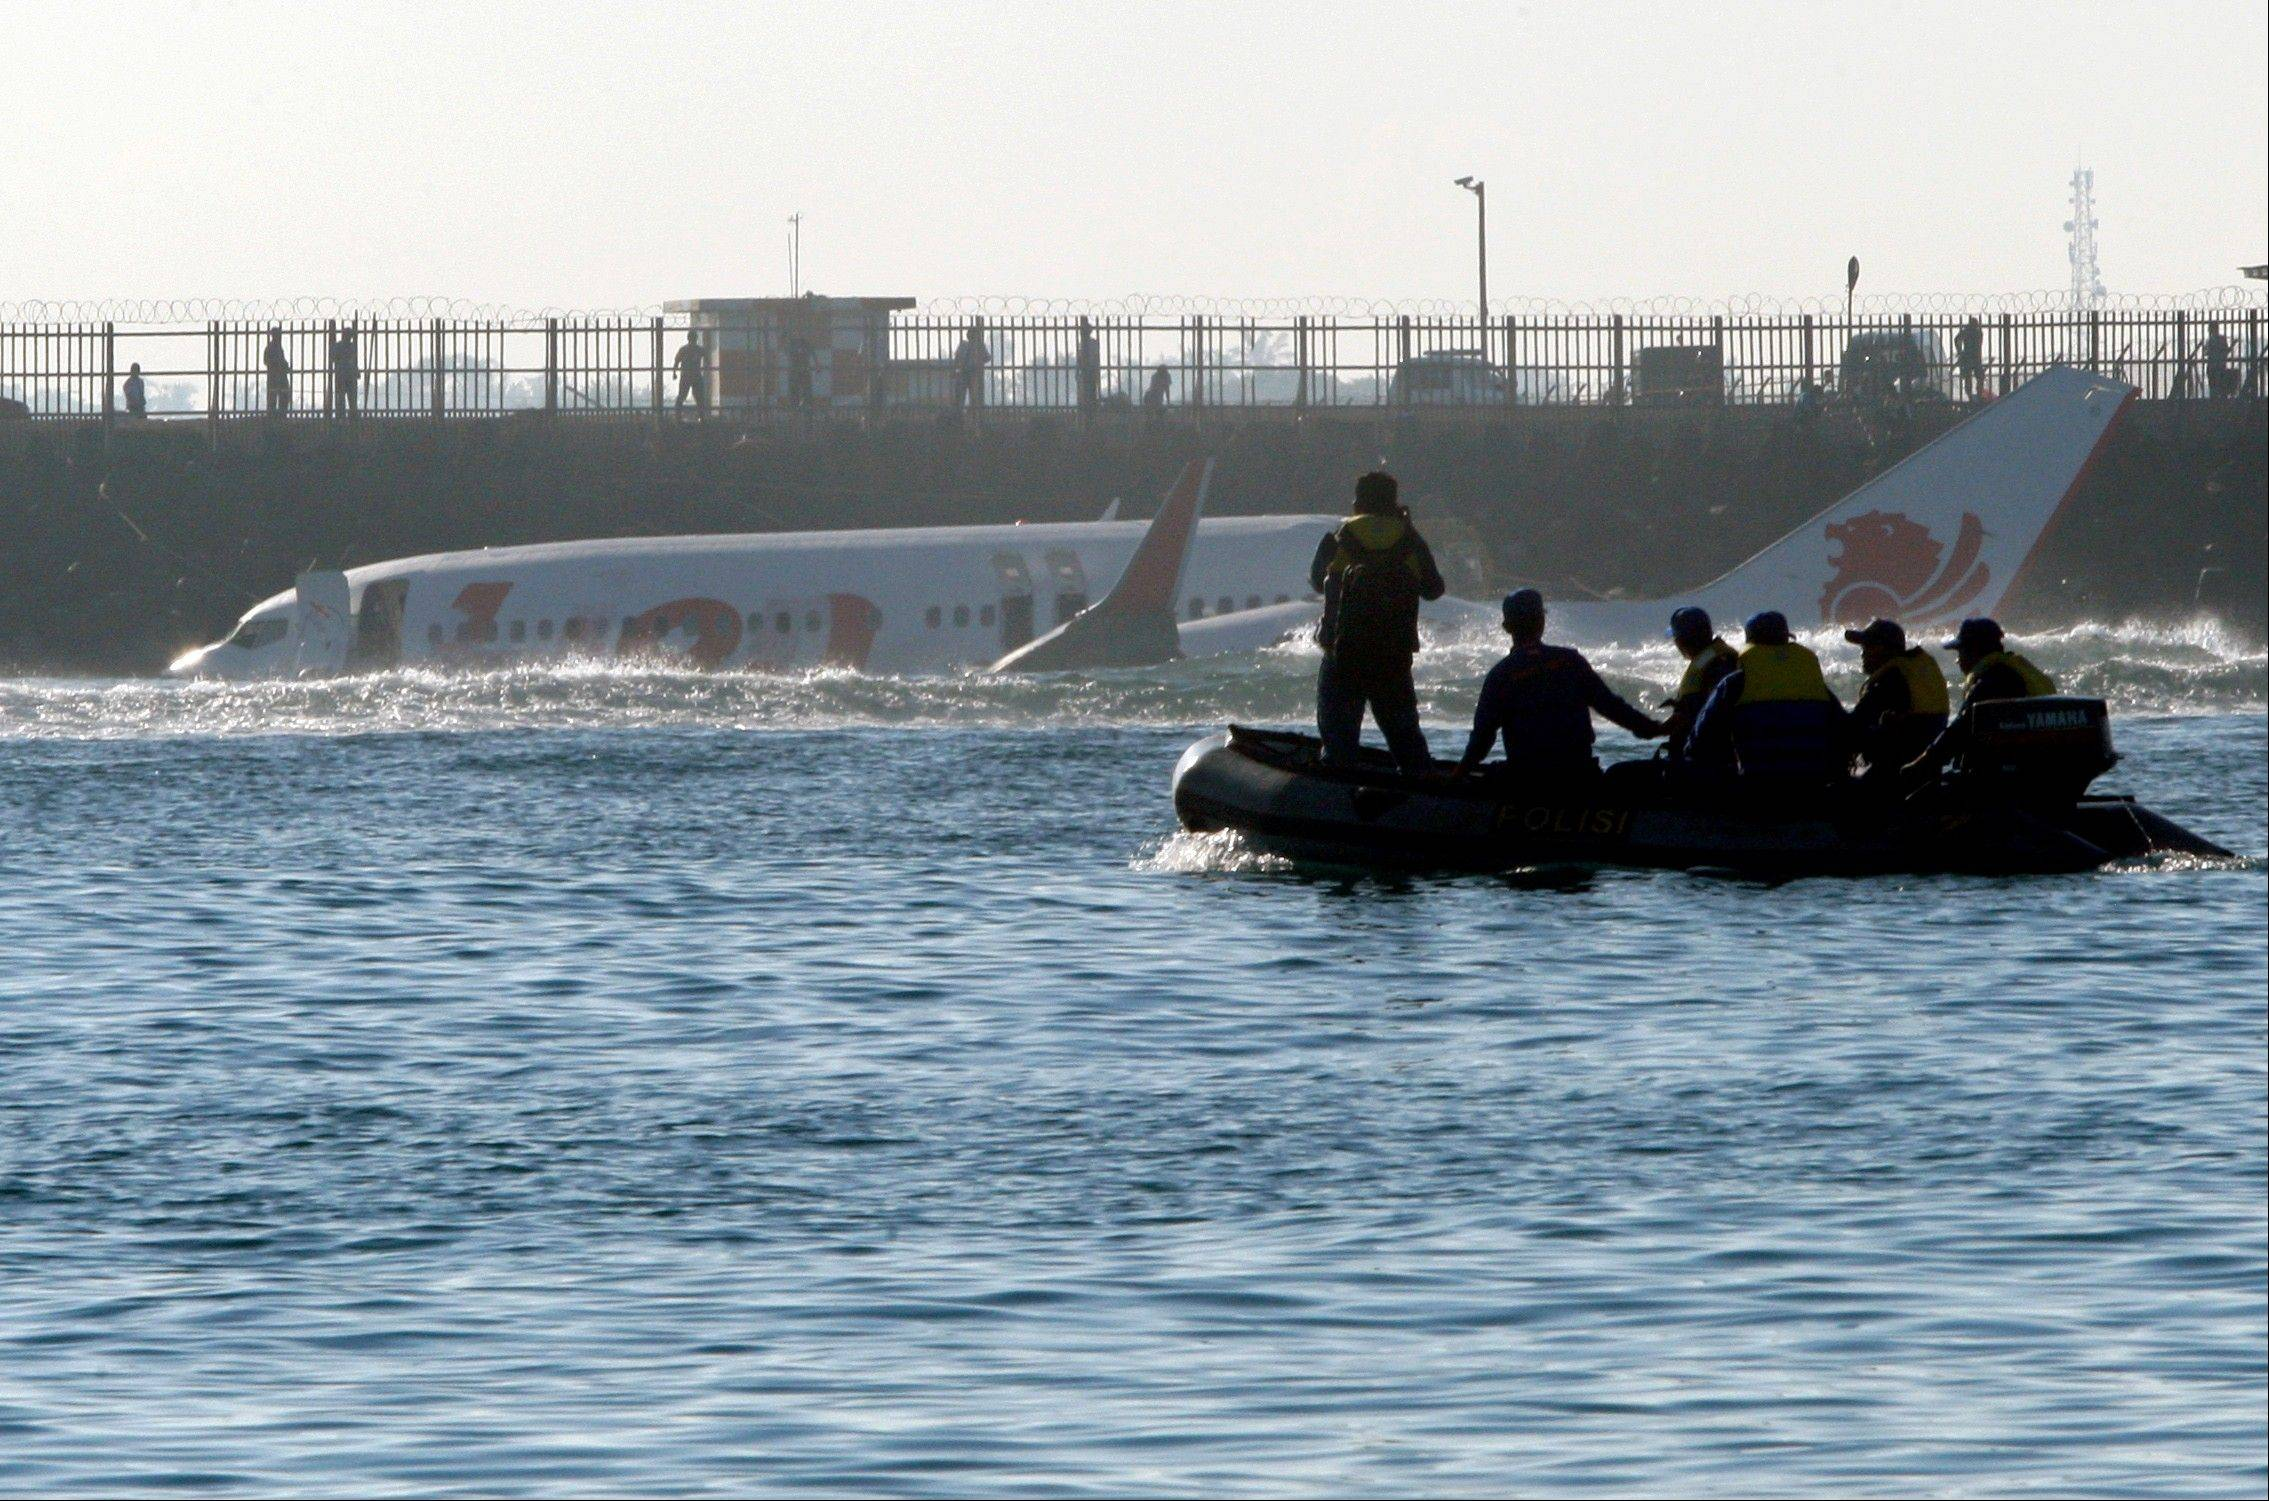 Indonesian marine police look at the wreckage of a Lion Air jet following Saturday's crash near the airport in Bali, Indonesia on Sunday. All 108 passengers and crew survived after the new Lion Air jet crashed into the ocean and snapped into two while attempting to land Saturday on the Indonesian resort island of Bali, injuring up to 45 people.